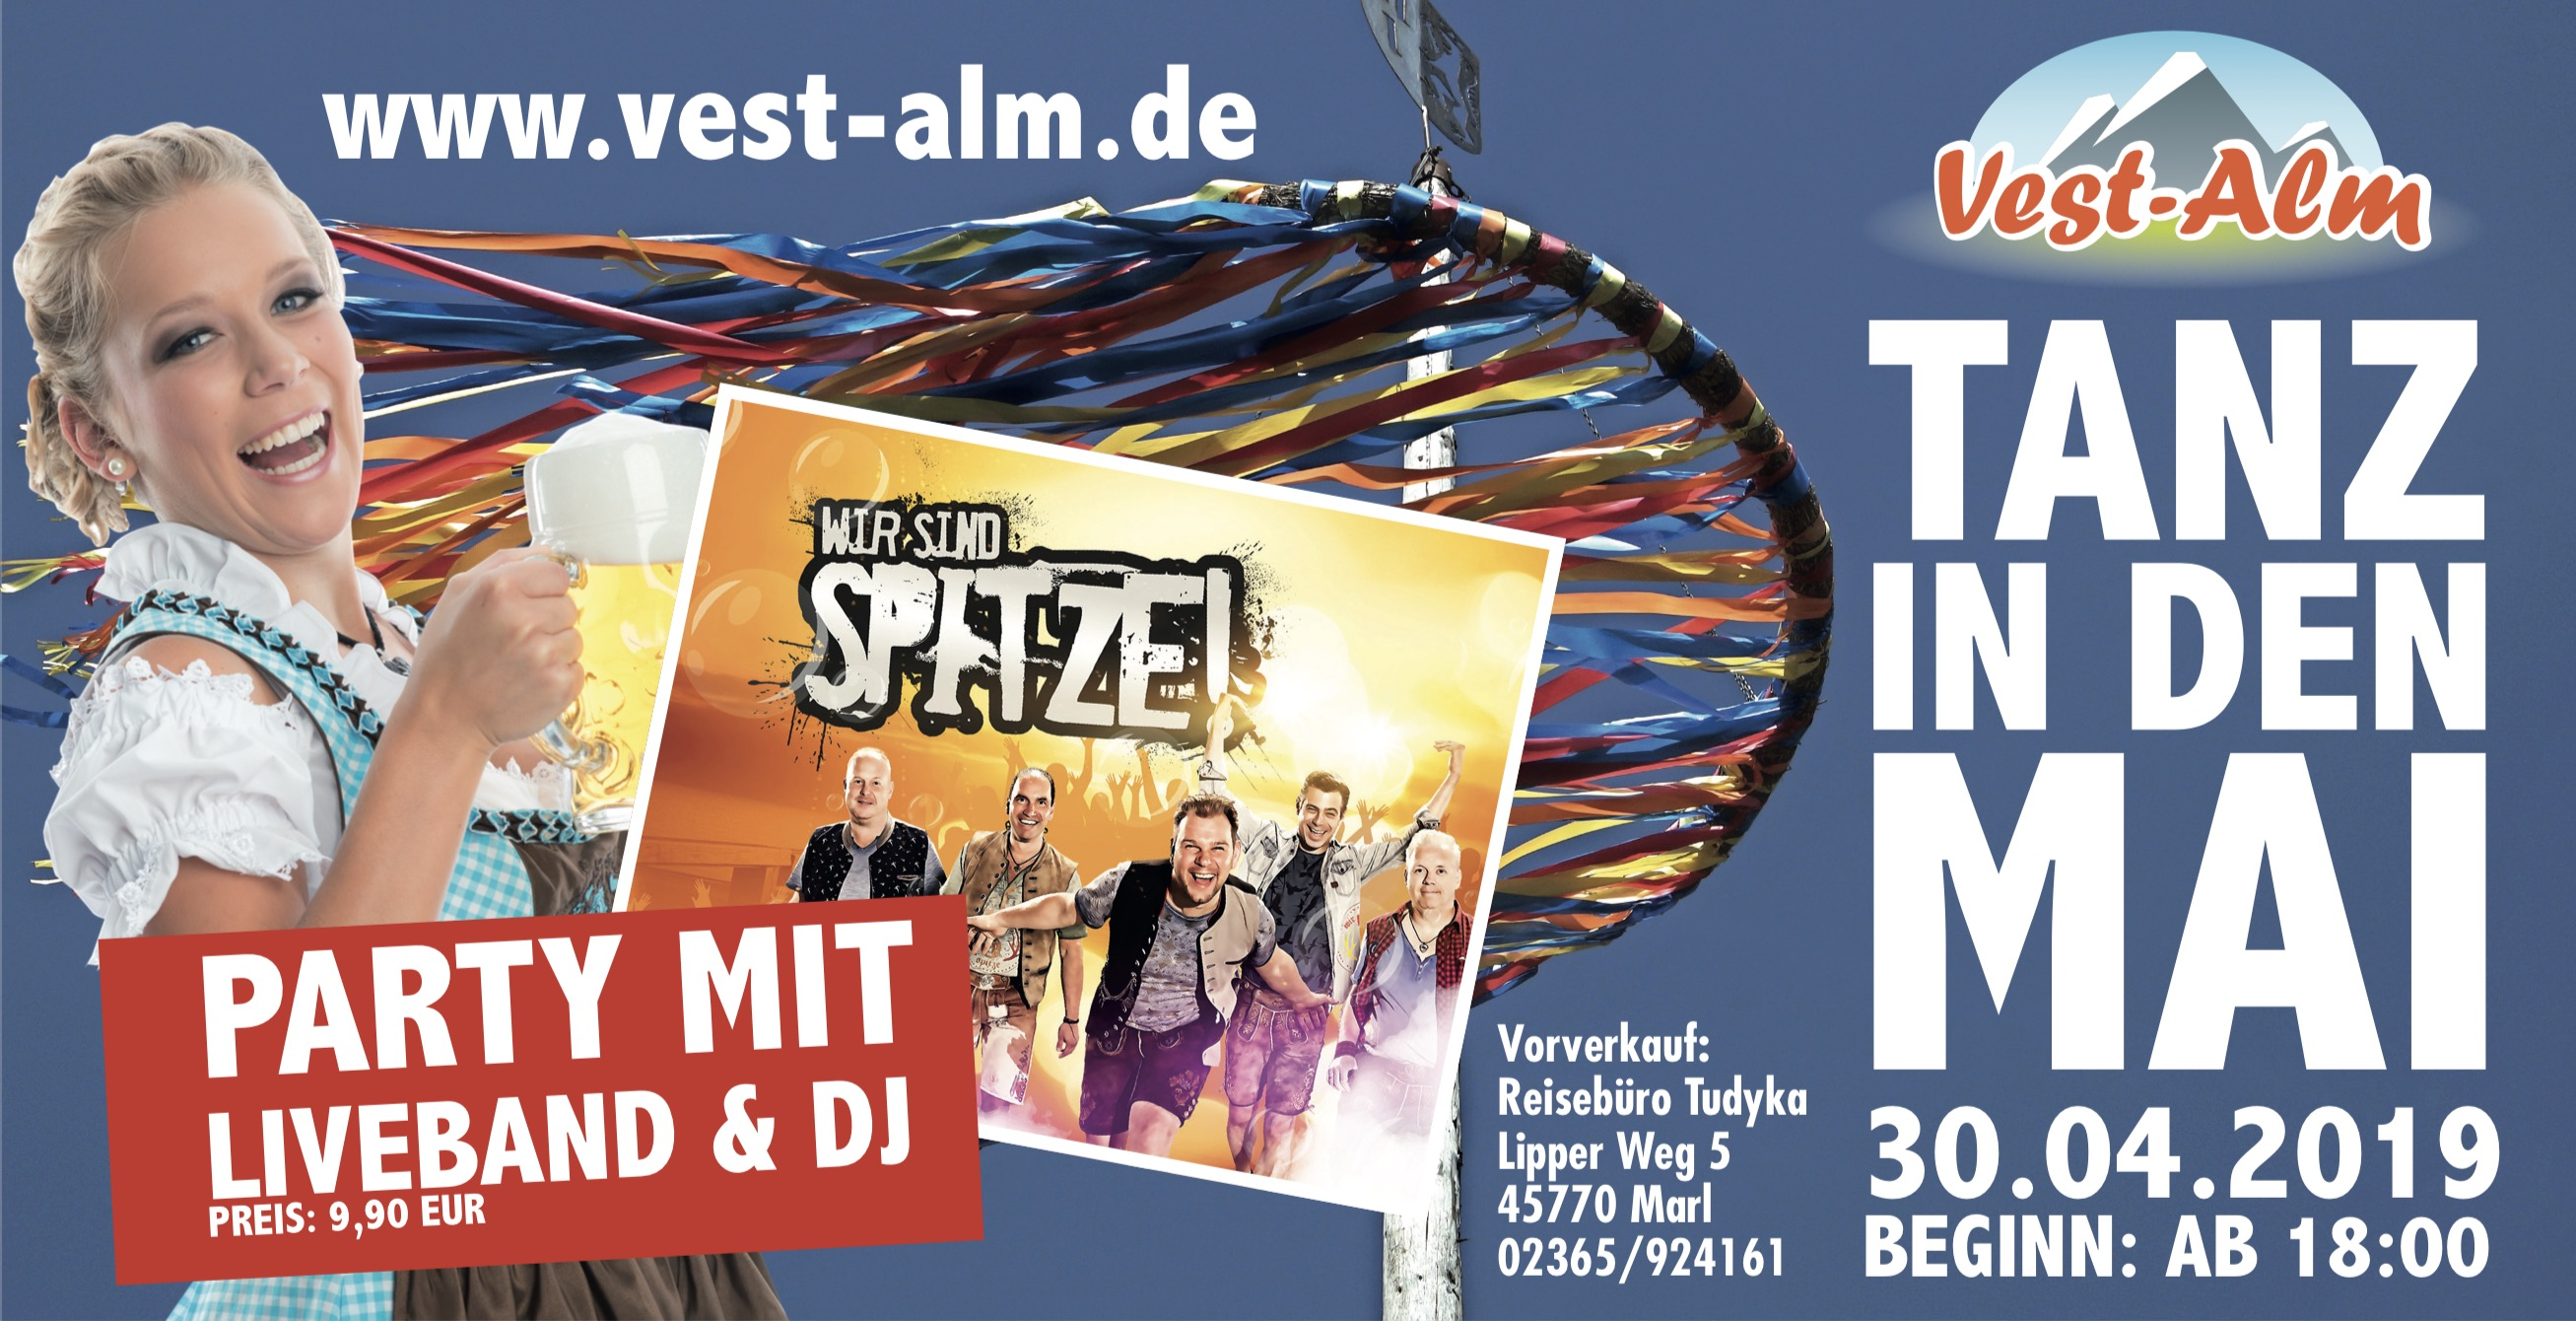 Aprés Ski Party 2019 in Marl Info Banner